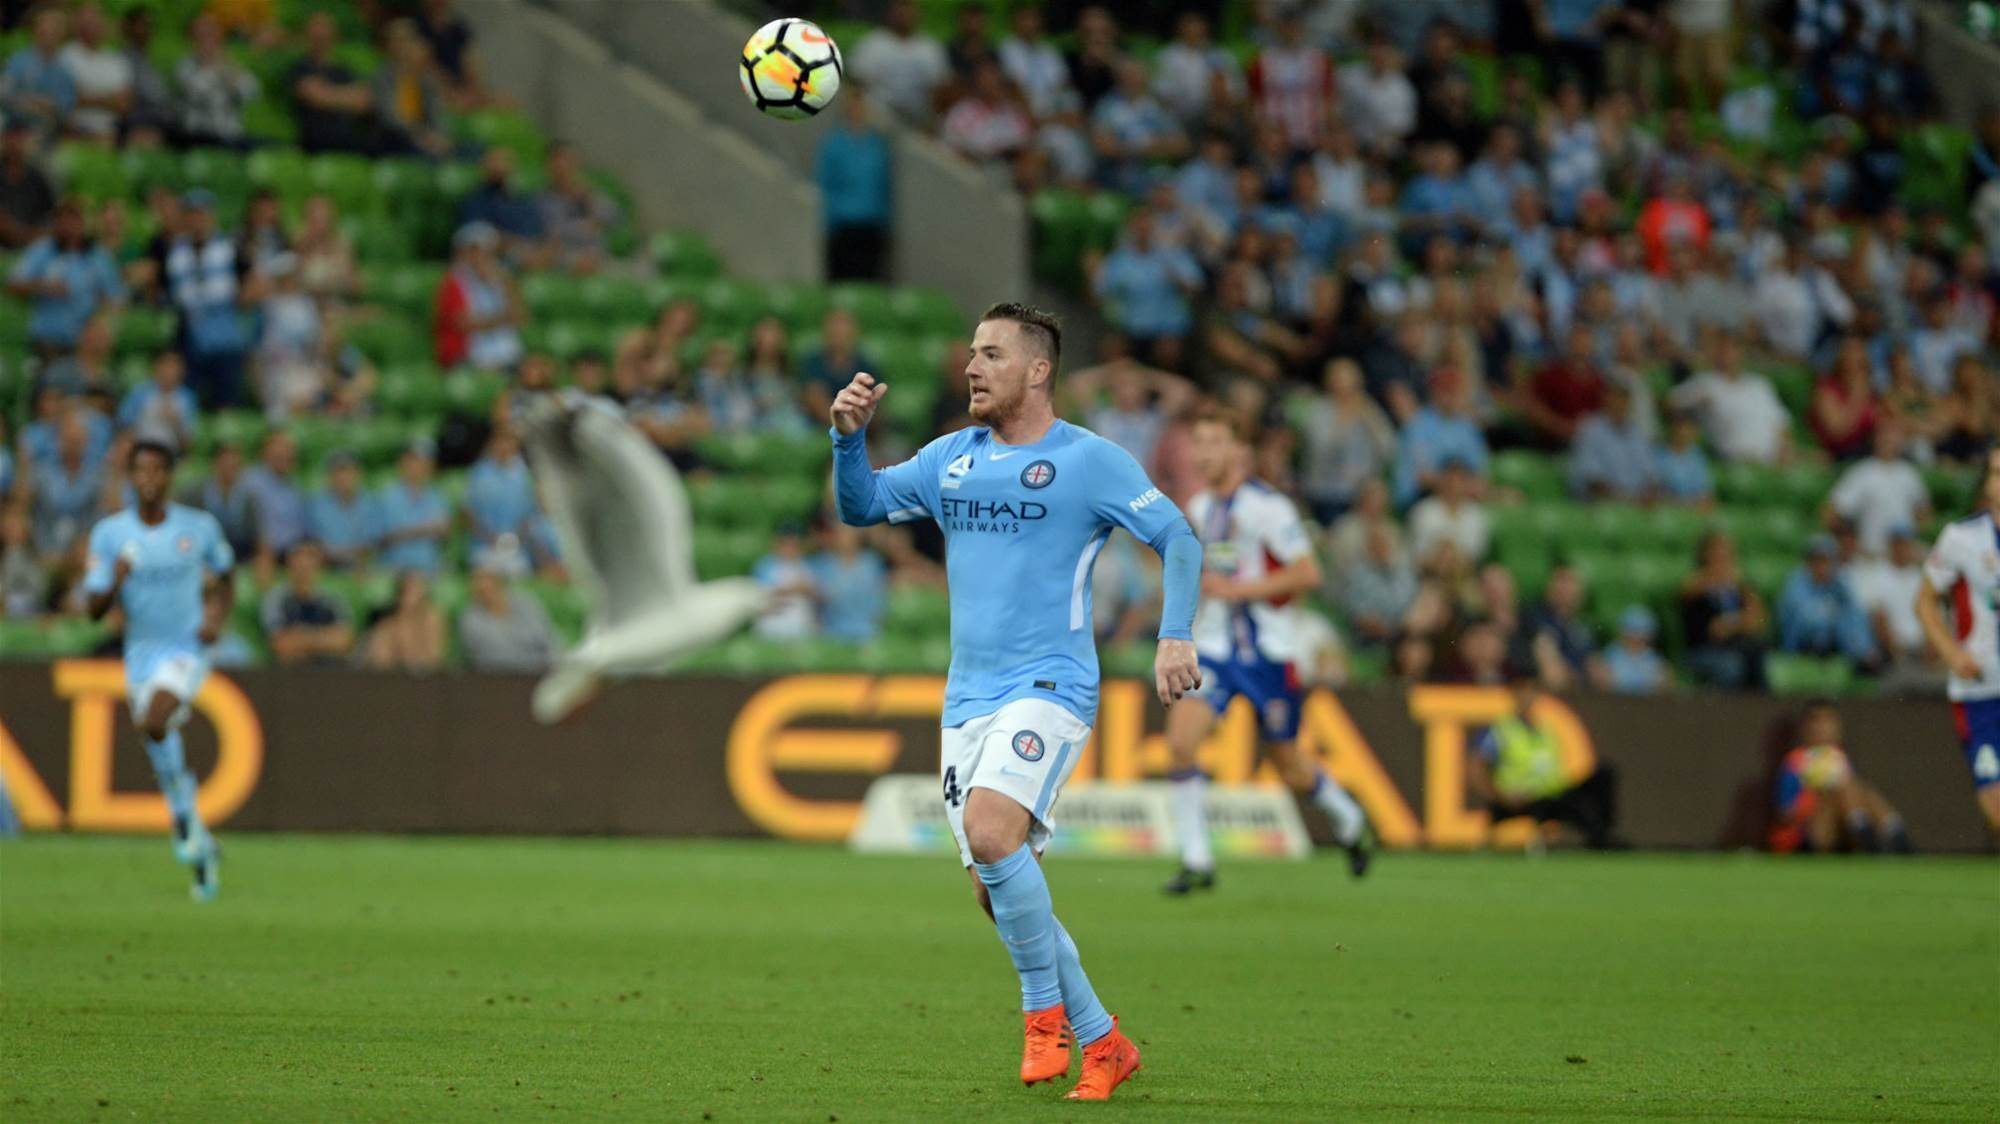 Villa's loss is A-League's gain